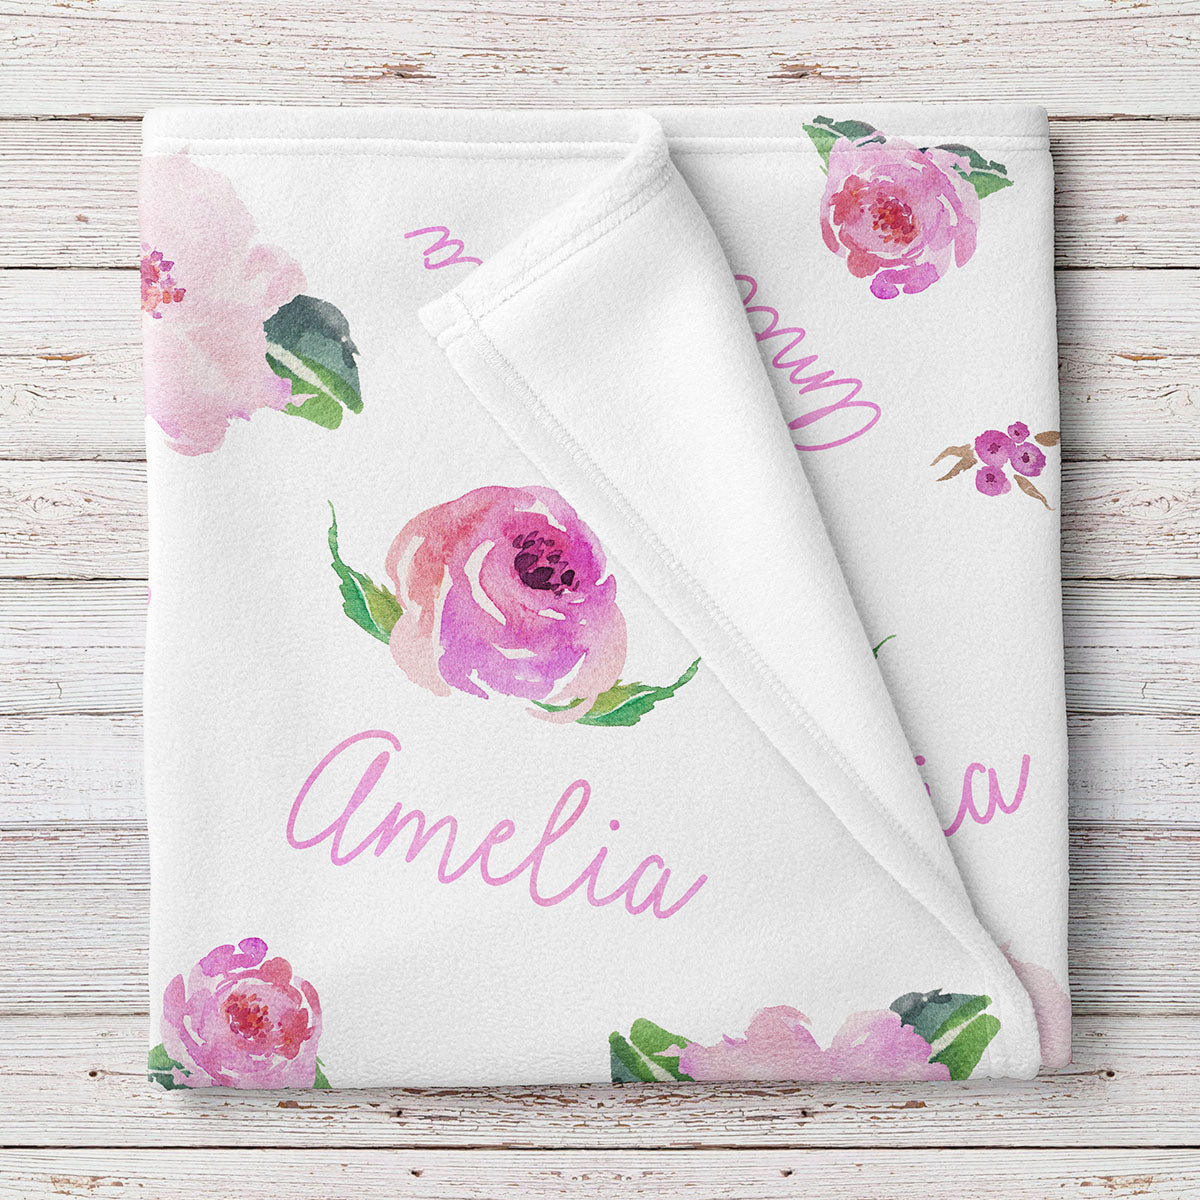 Personalized Baby Girl Name Blanket, Pink floral watercolor print (BB116)